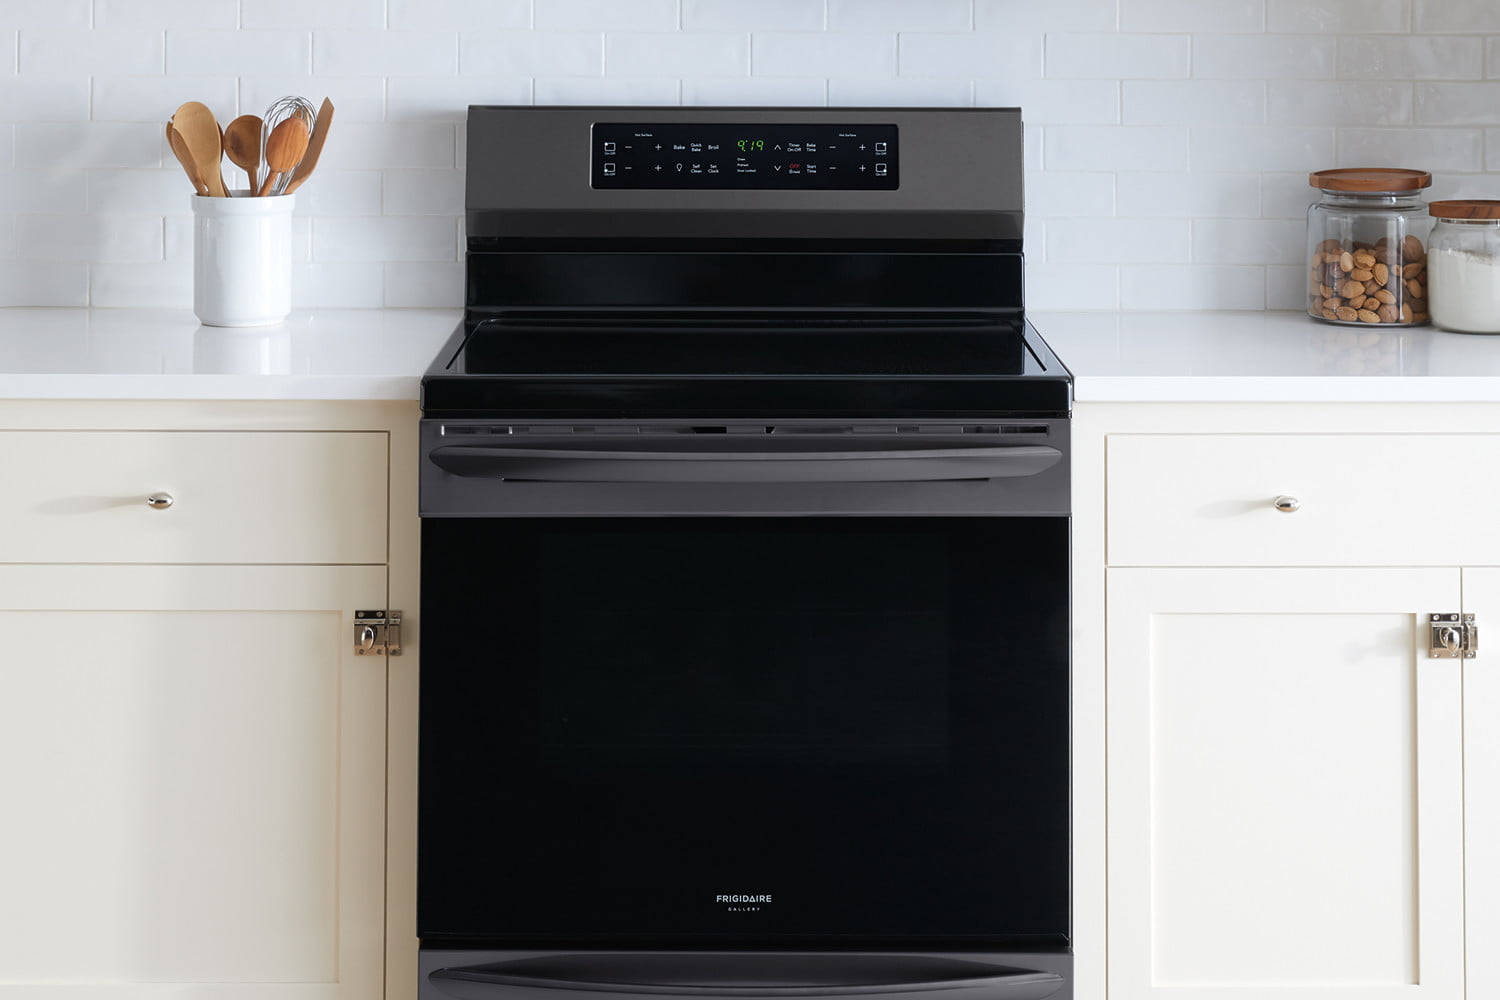 cooking on the frigidaire gallery fgif3036tf induction range self cleaning oven 7